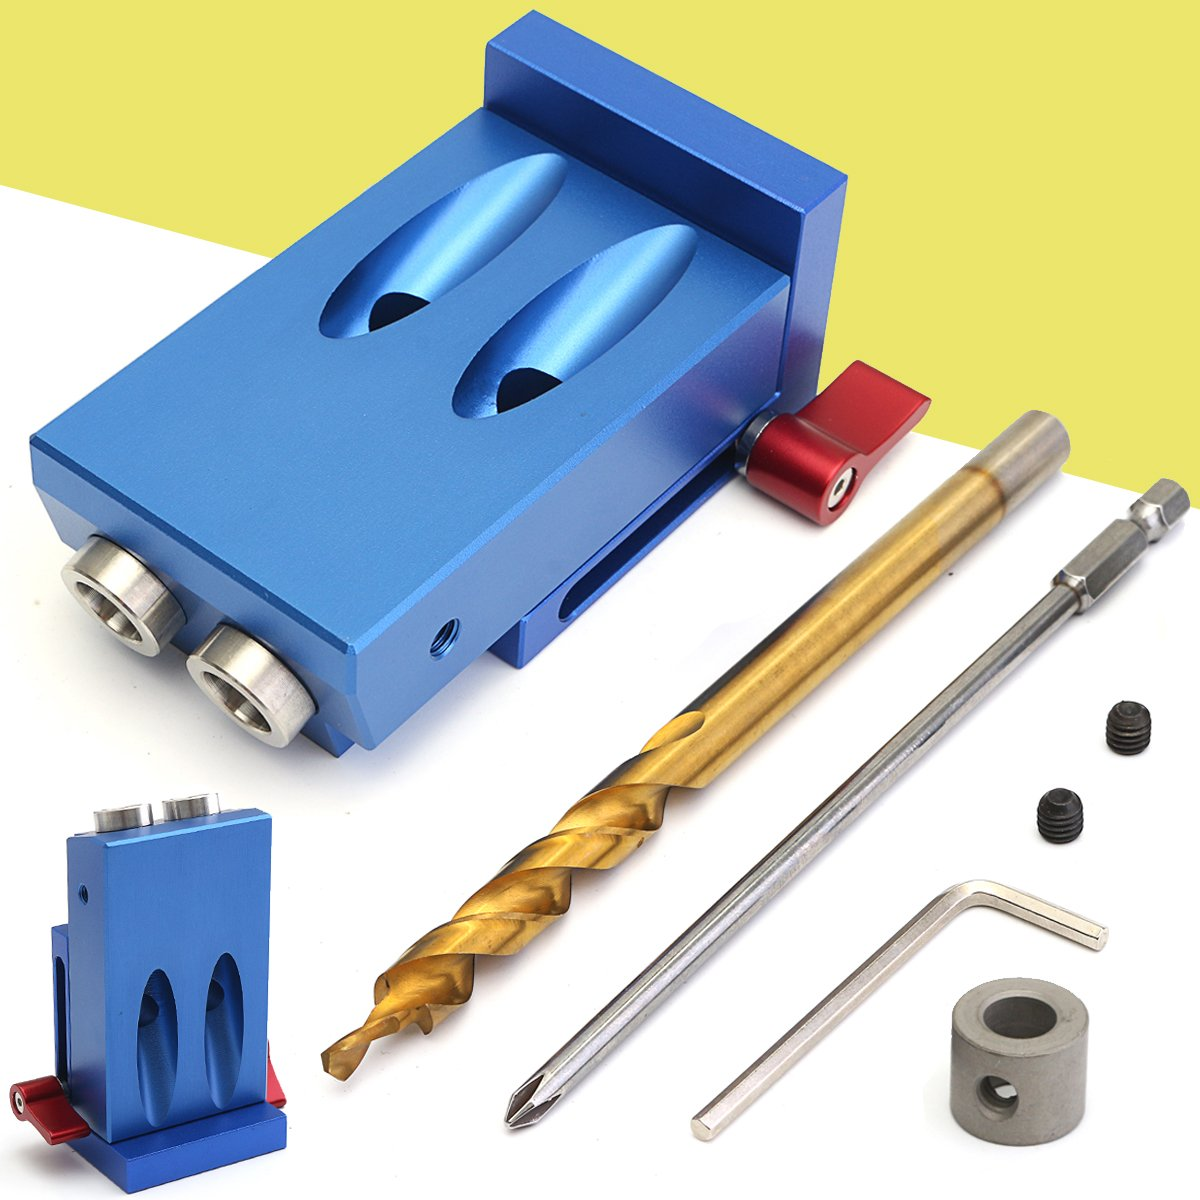 Mini Pocket Hole Jig Kit Style w/ Step Drilling Bit Woodwork Joint Tool Set, Blue